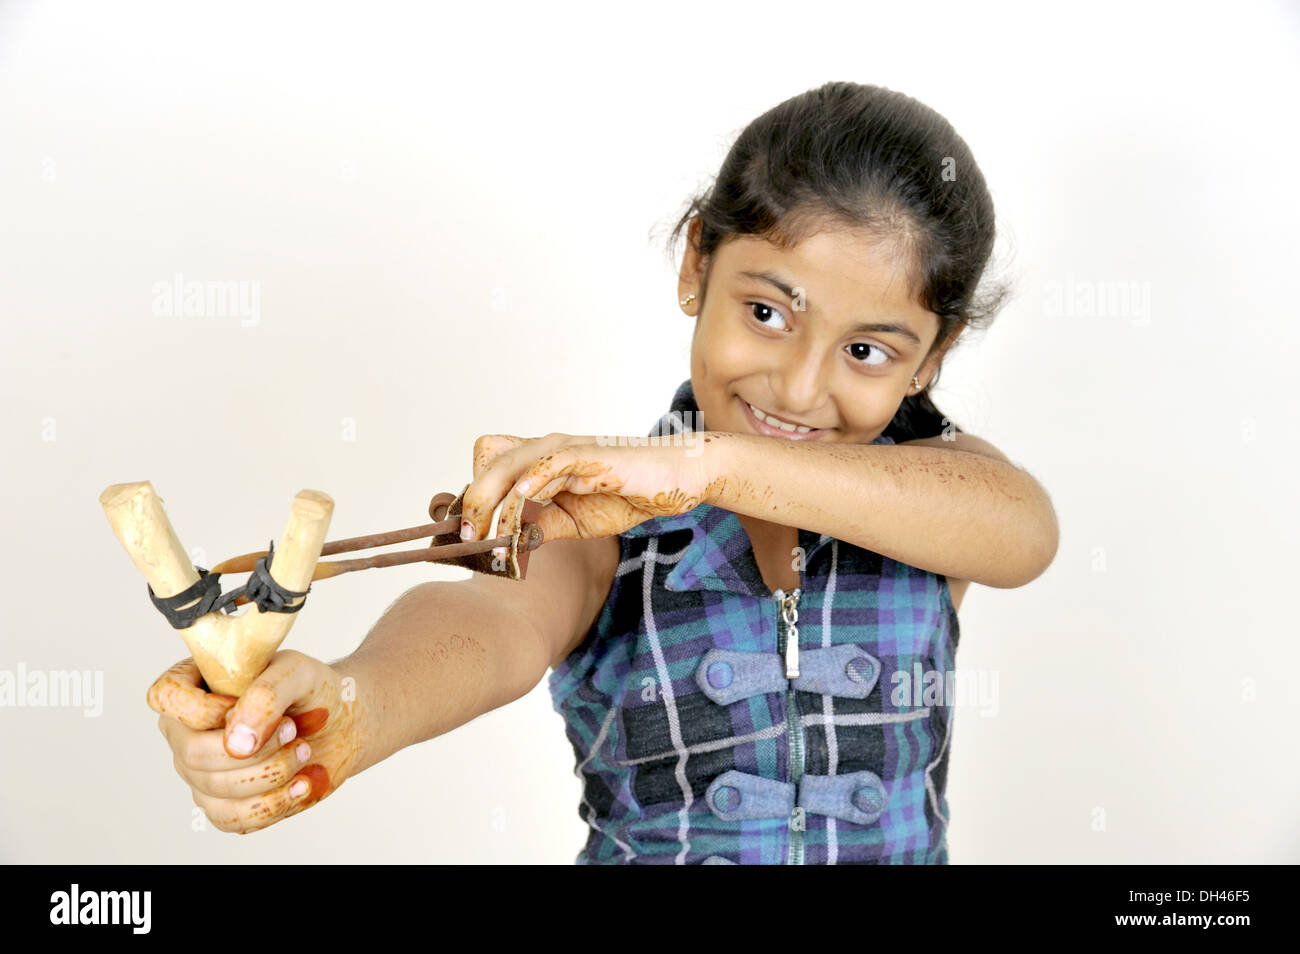 Kids Playing With Sling Shot